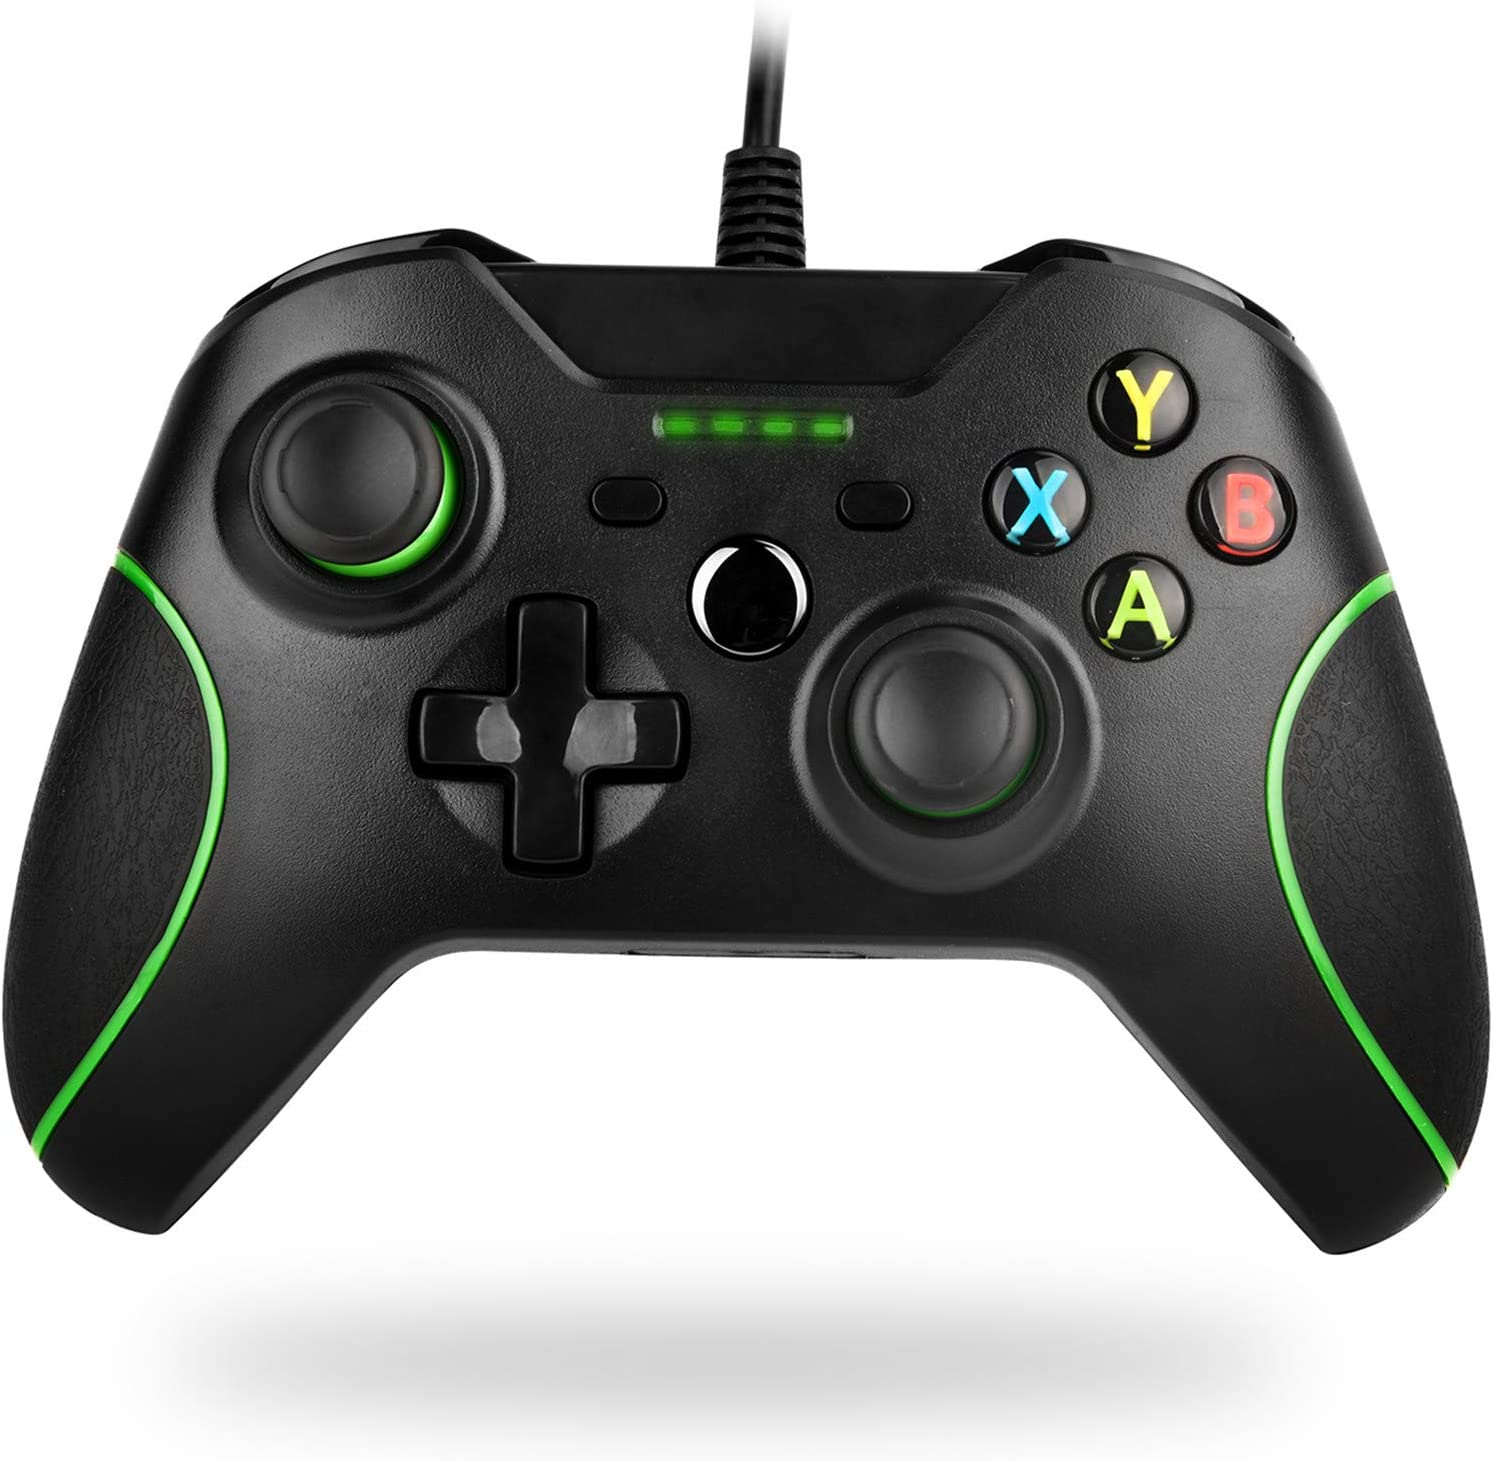 Spring new work one after another TechKen Industry No. 1 Wired Controller for Game Xbox one USB